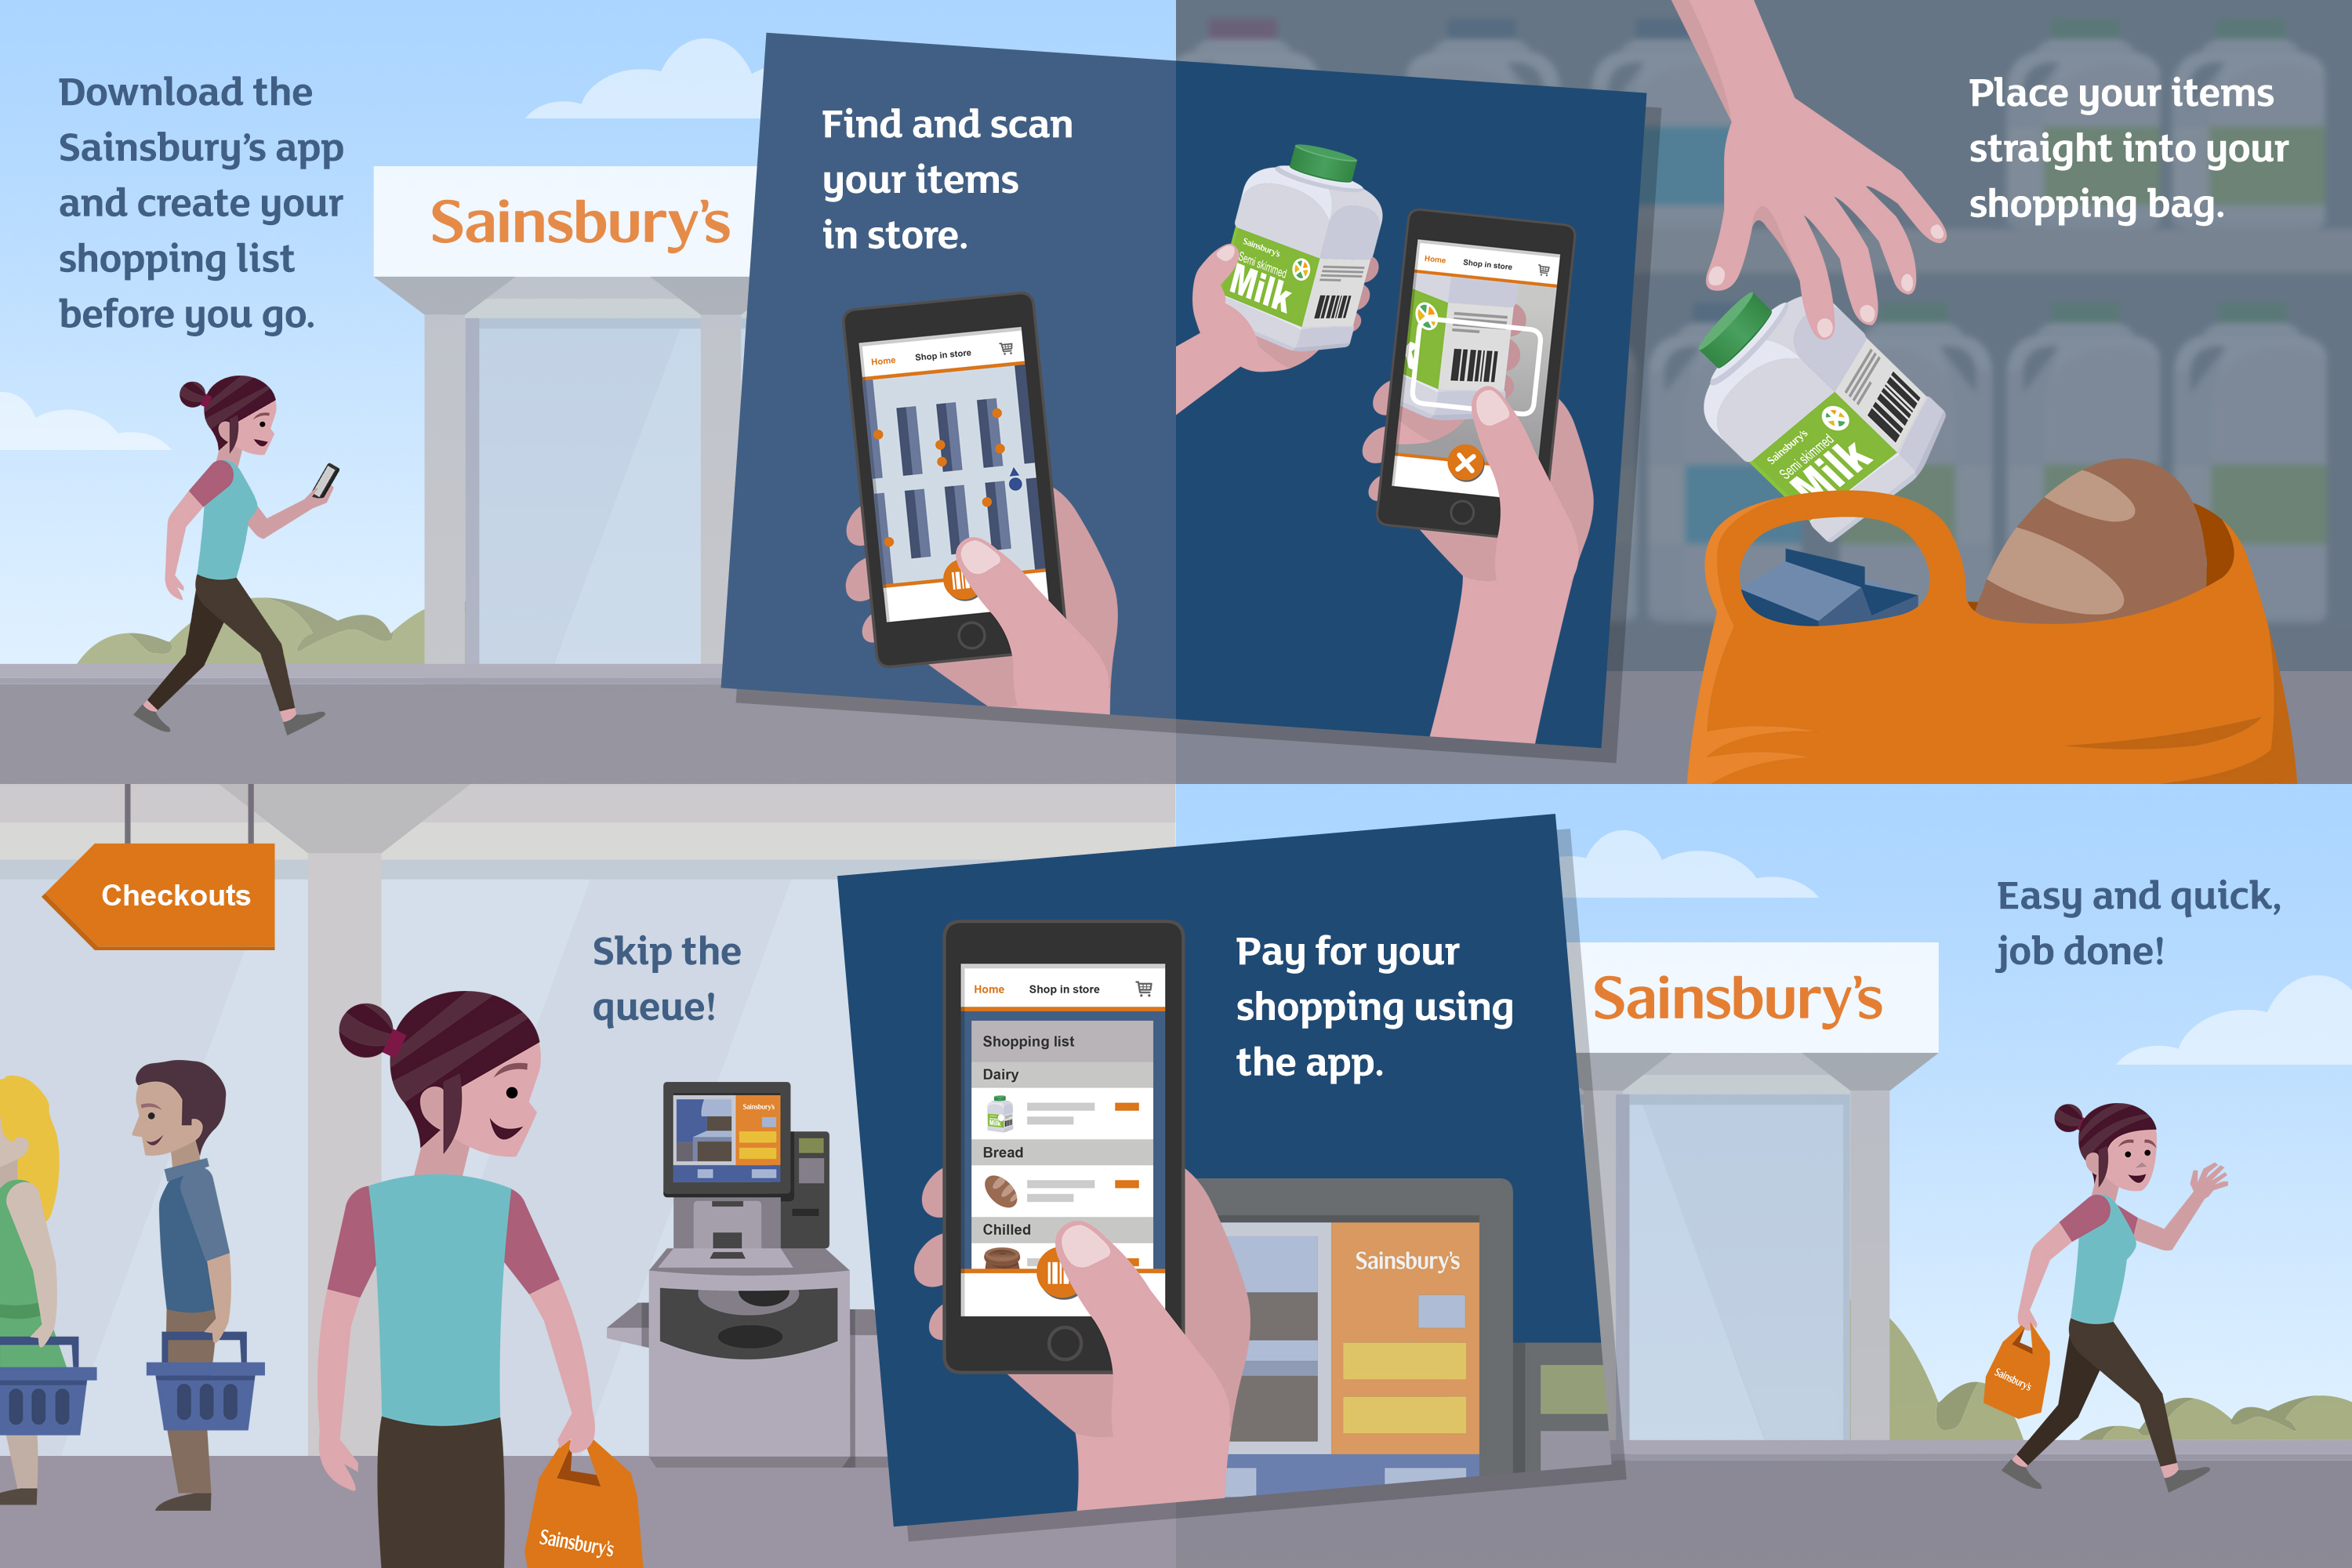 customer services at sainsburys Sainsbury's bank is a bank in the uk jointly owned by j sainsbury plc and the lloyds banking group sainsbury's bank was founded in 1997 when they became the first major british supermarket to open a bank.